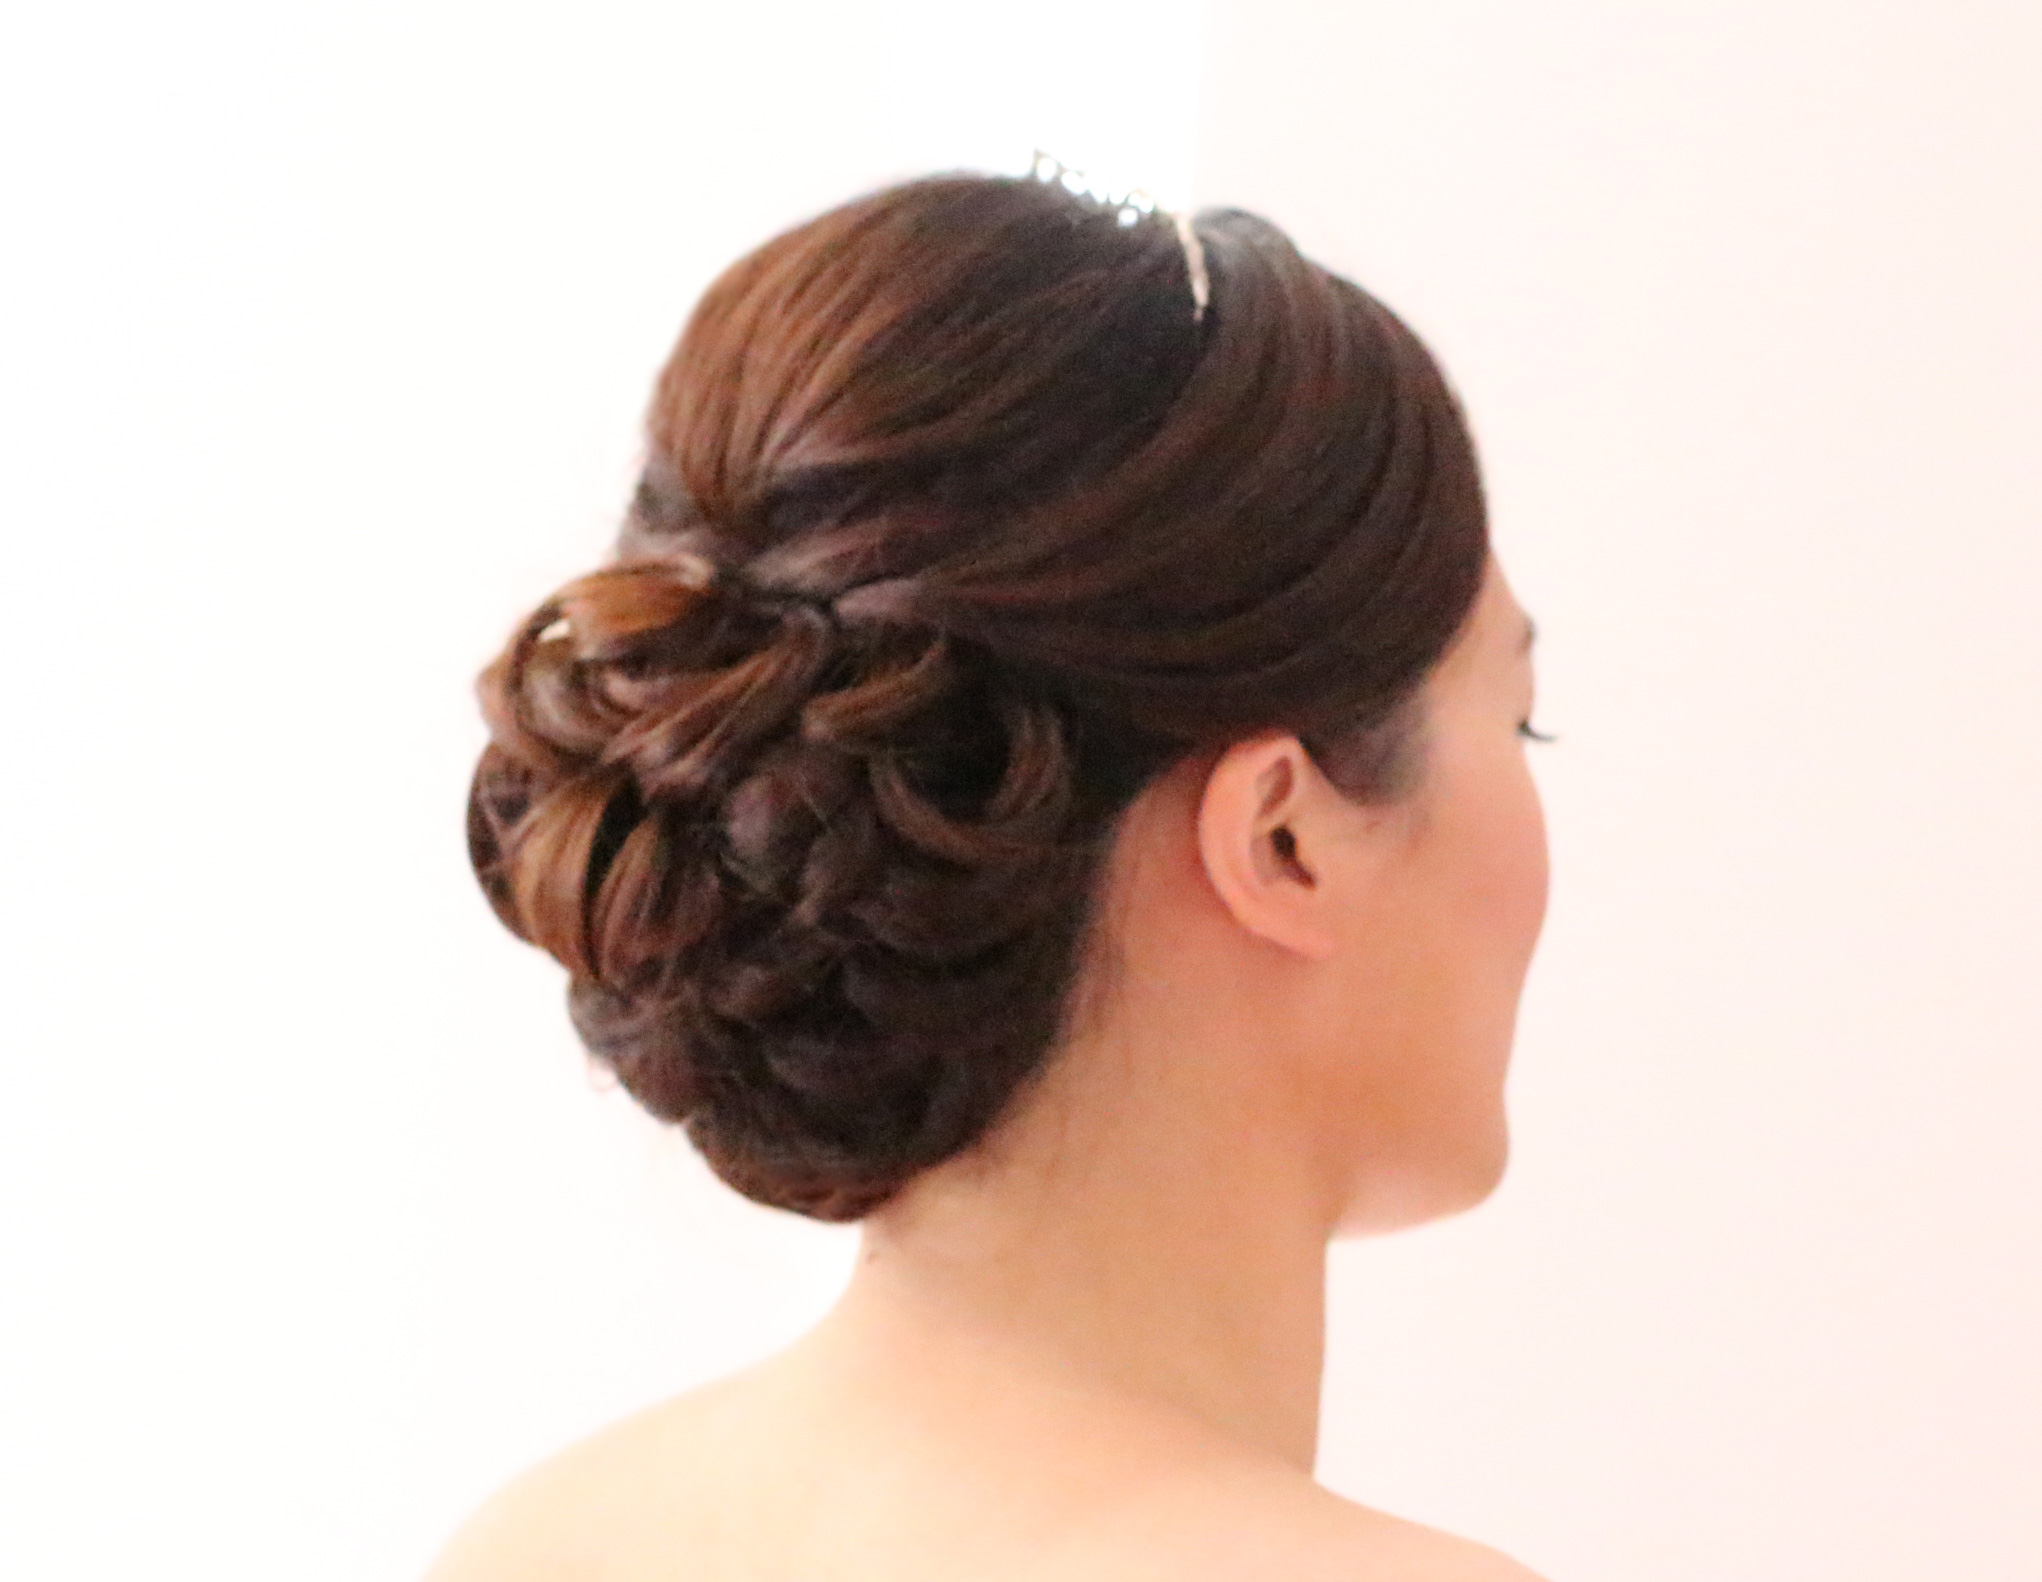 Asian style wedding hairstyle updo